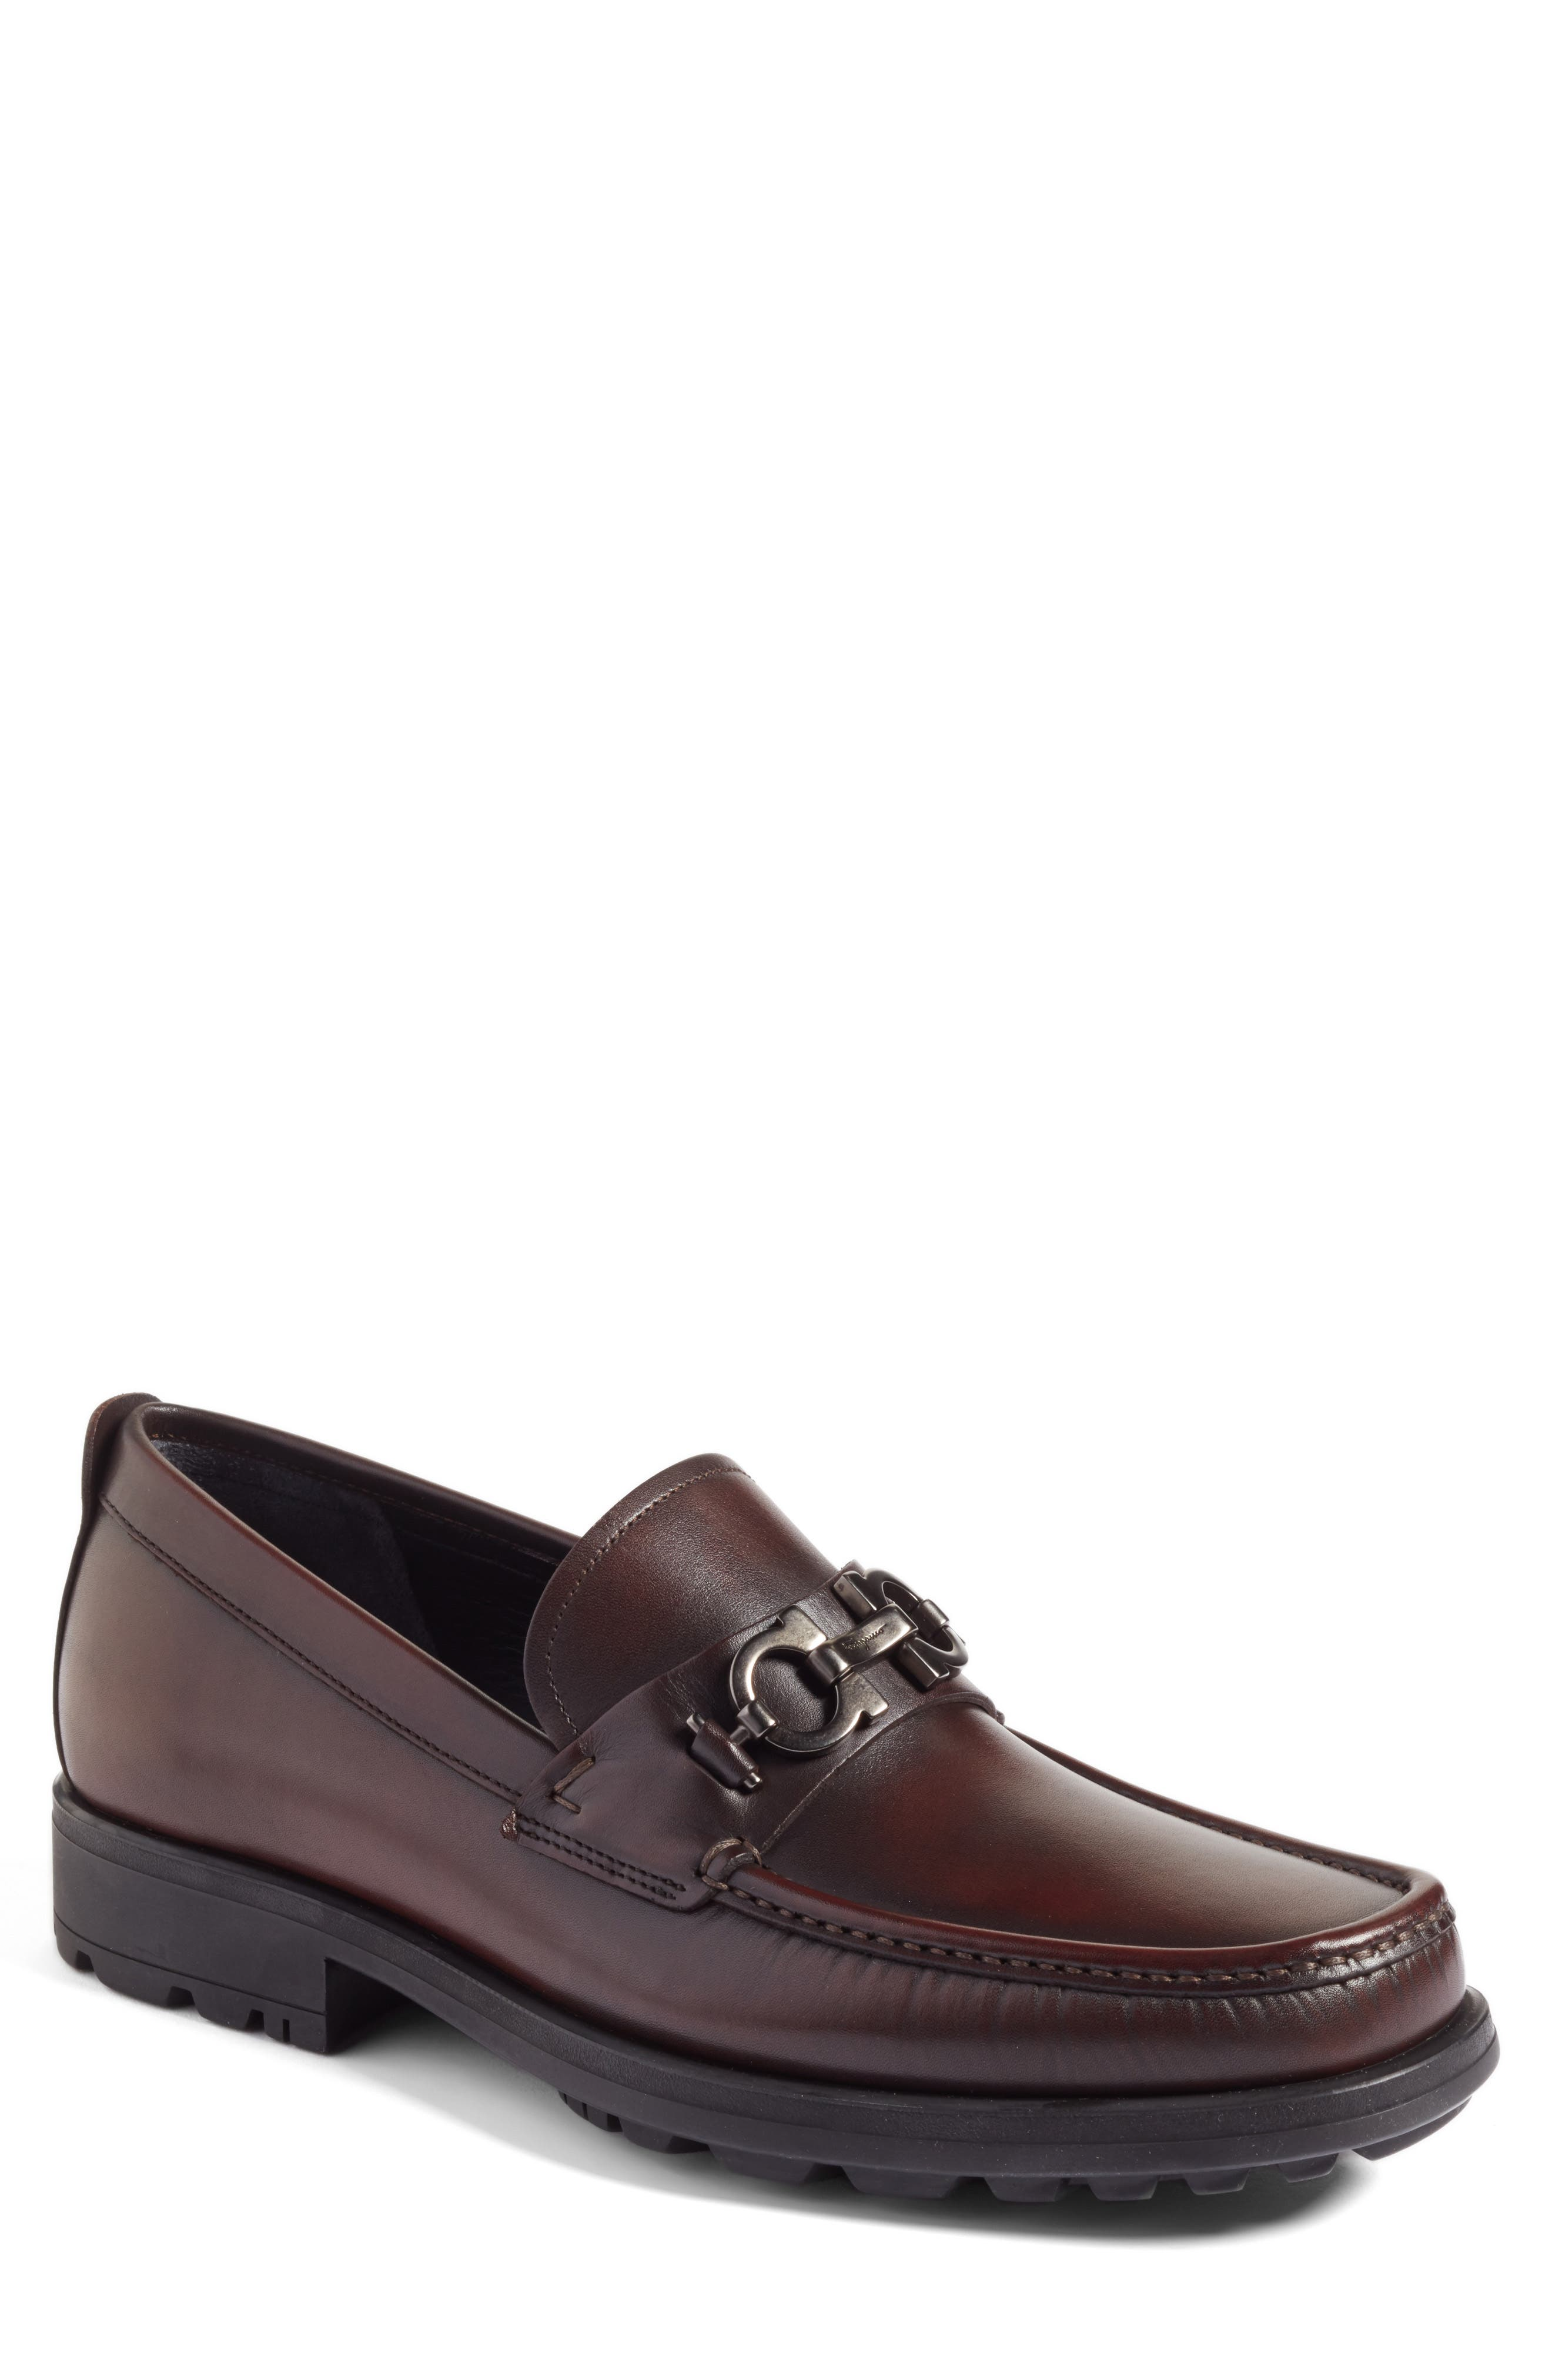 Salvatore Ferragamo David Bit Loafer (Men)